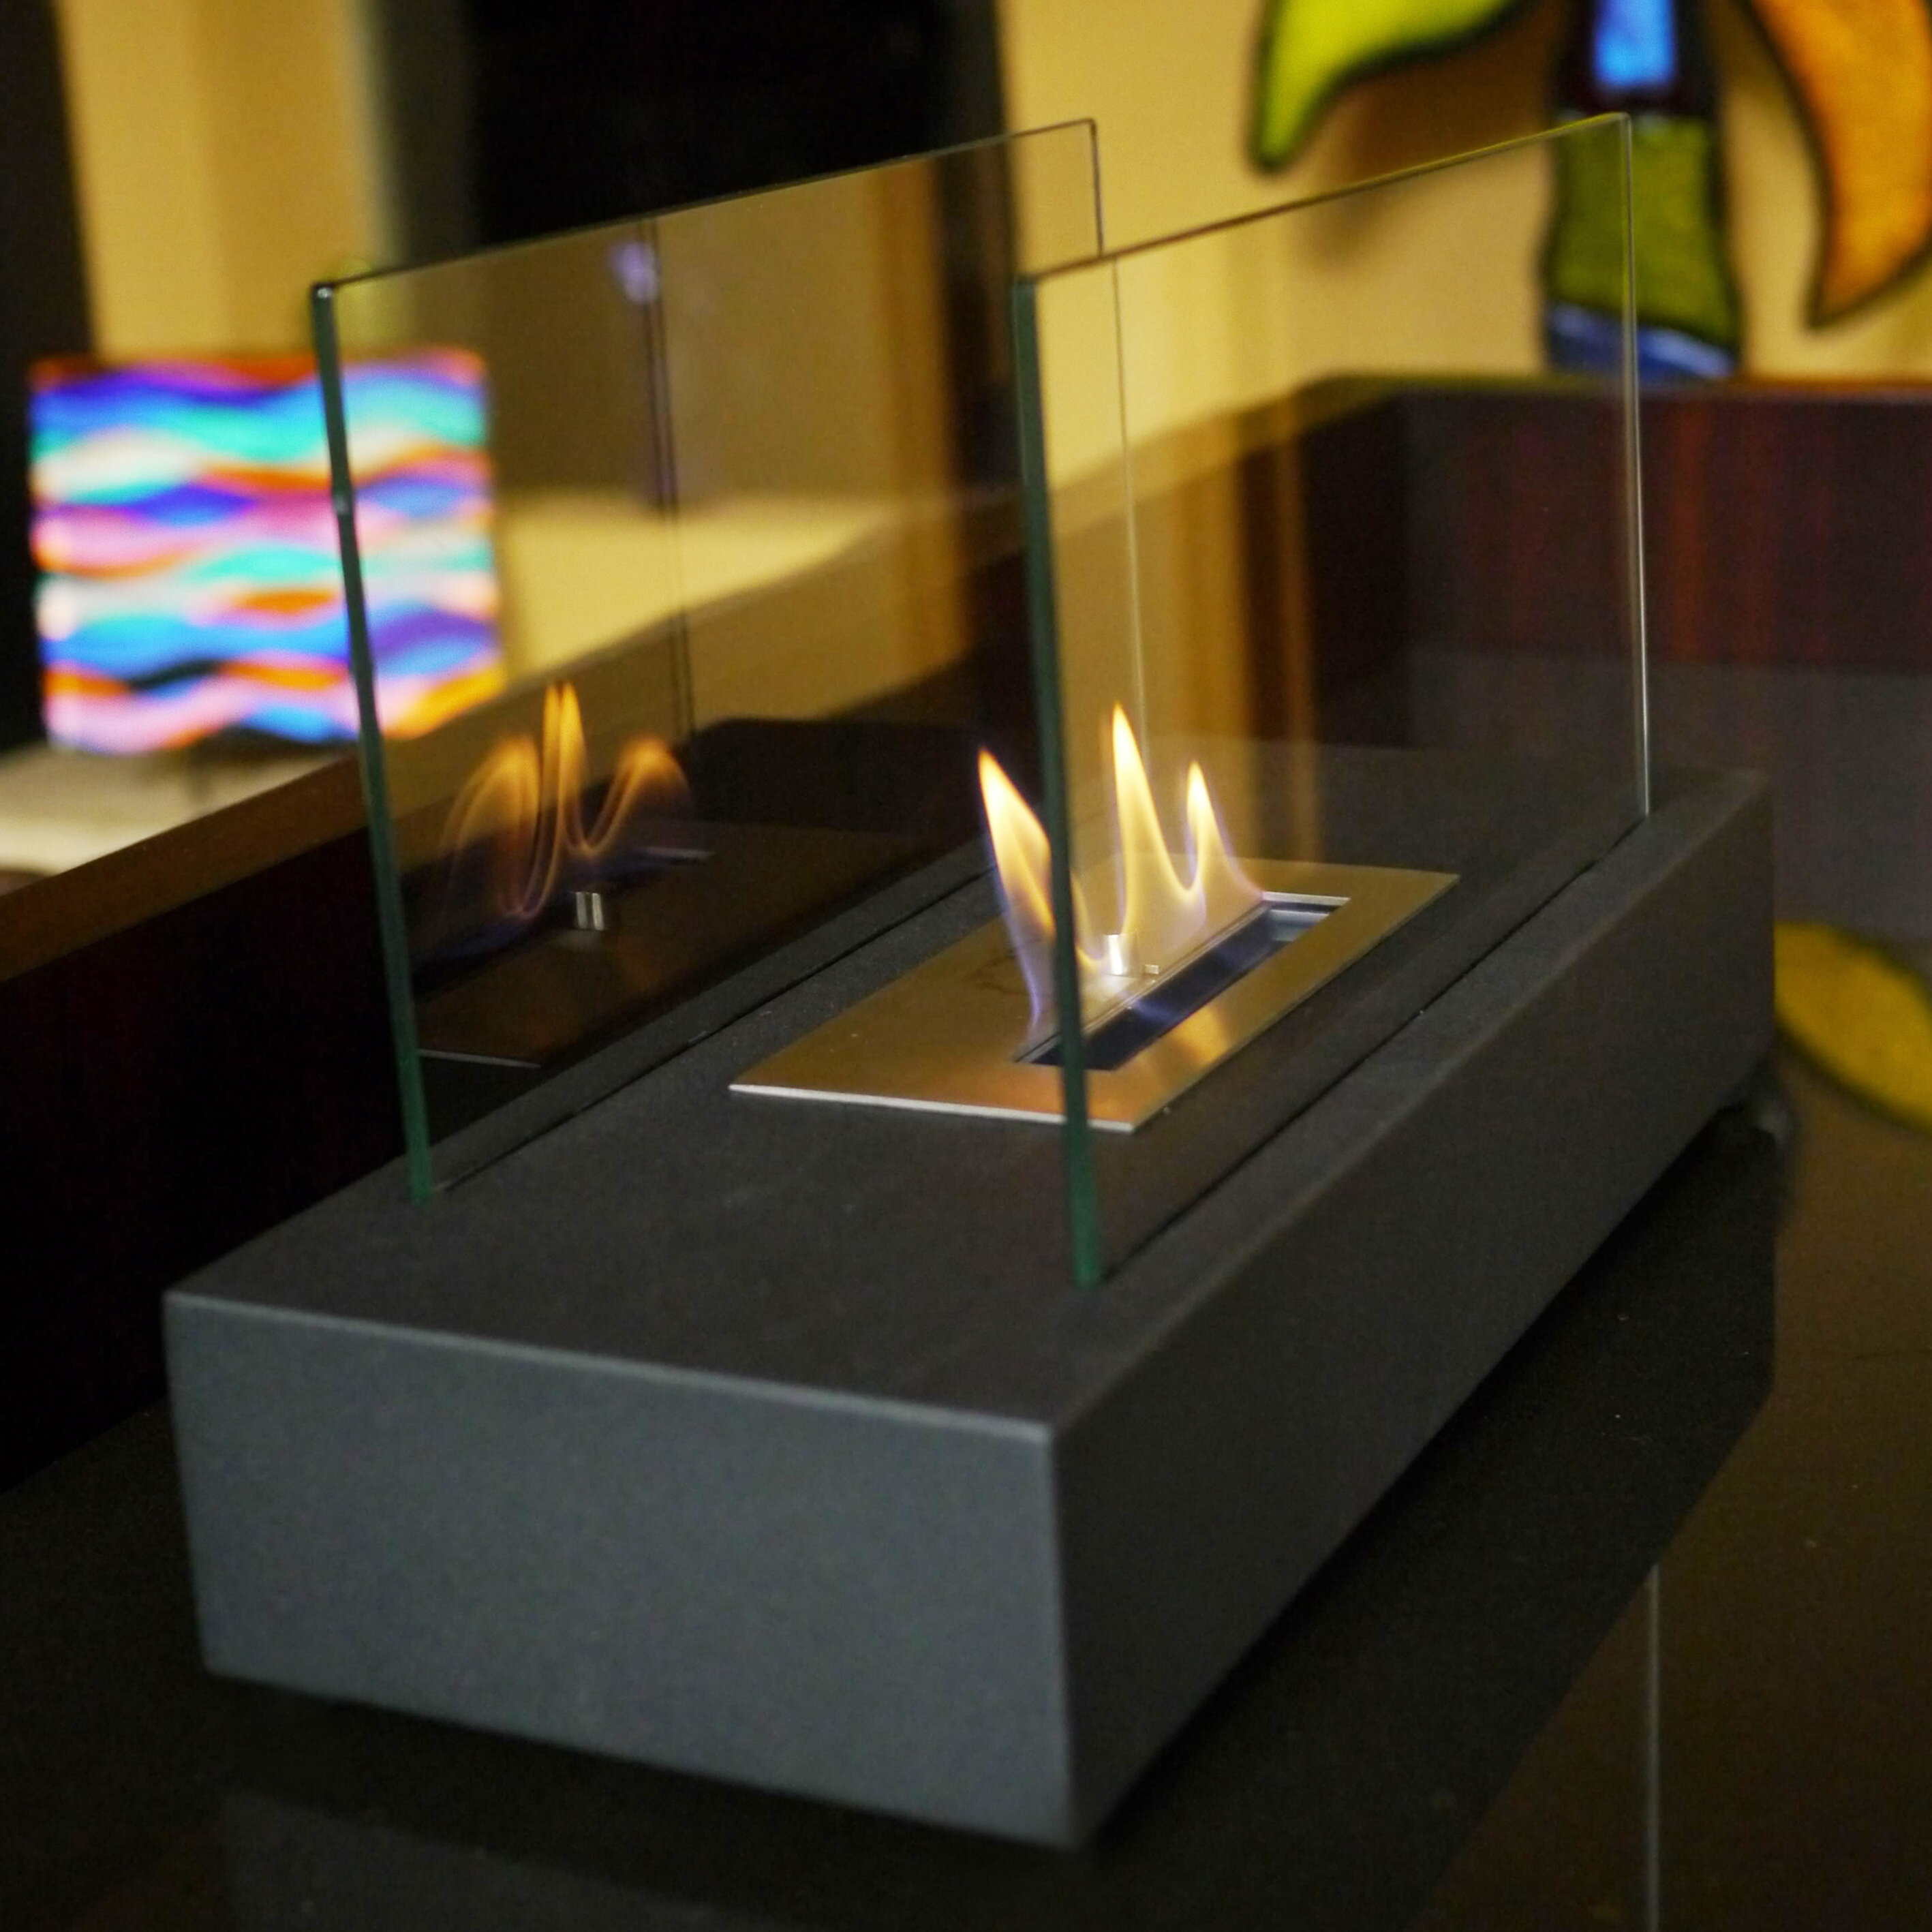 fire countertops county southern table design products fireplace california product firetable orange wave olson concrete